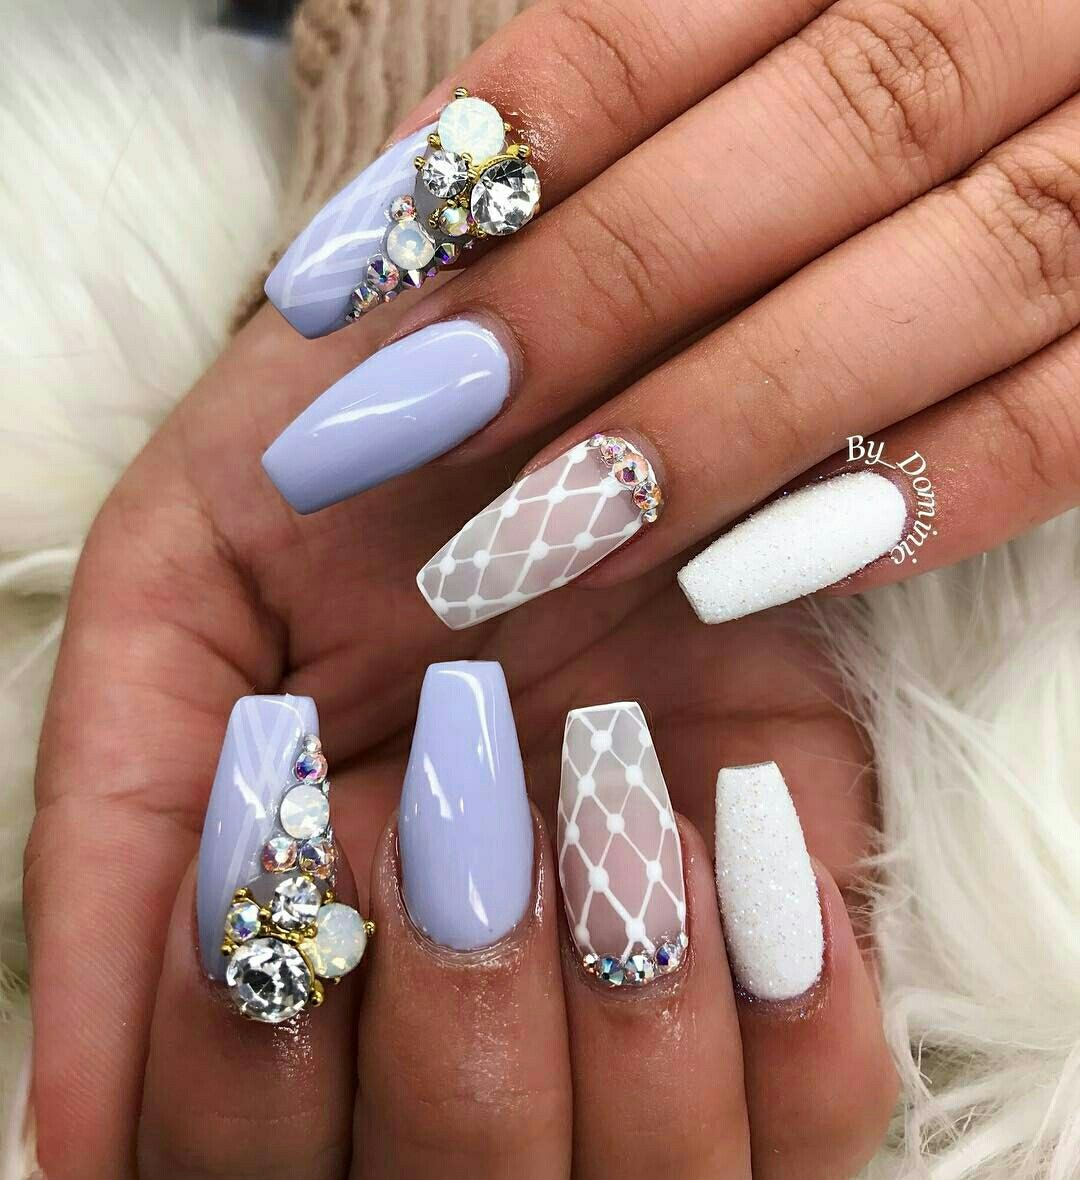 Pin by IITU on Nails   Pinterest   Nails games